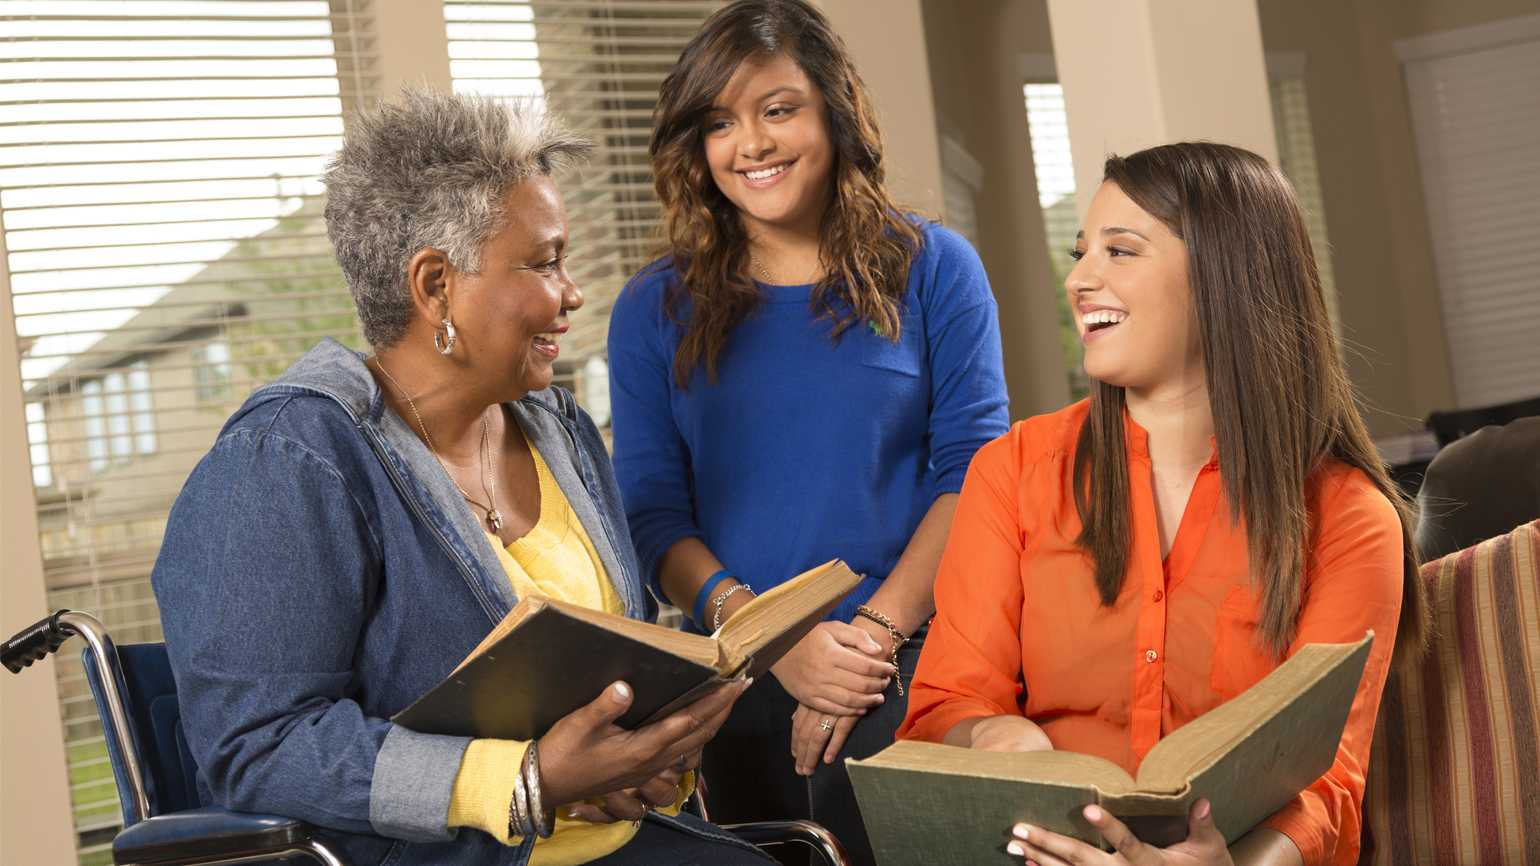 4 Ways that Storytelling Benefits Older People and Their Caregivers